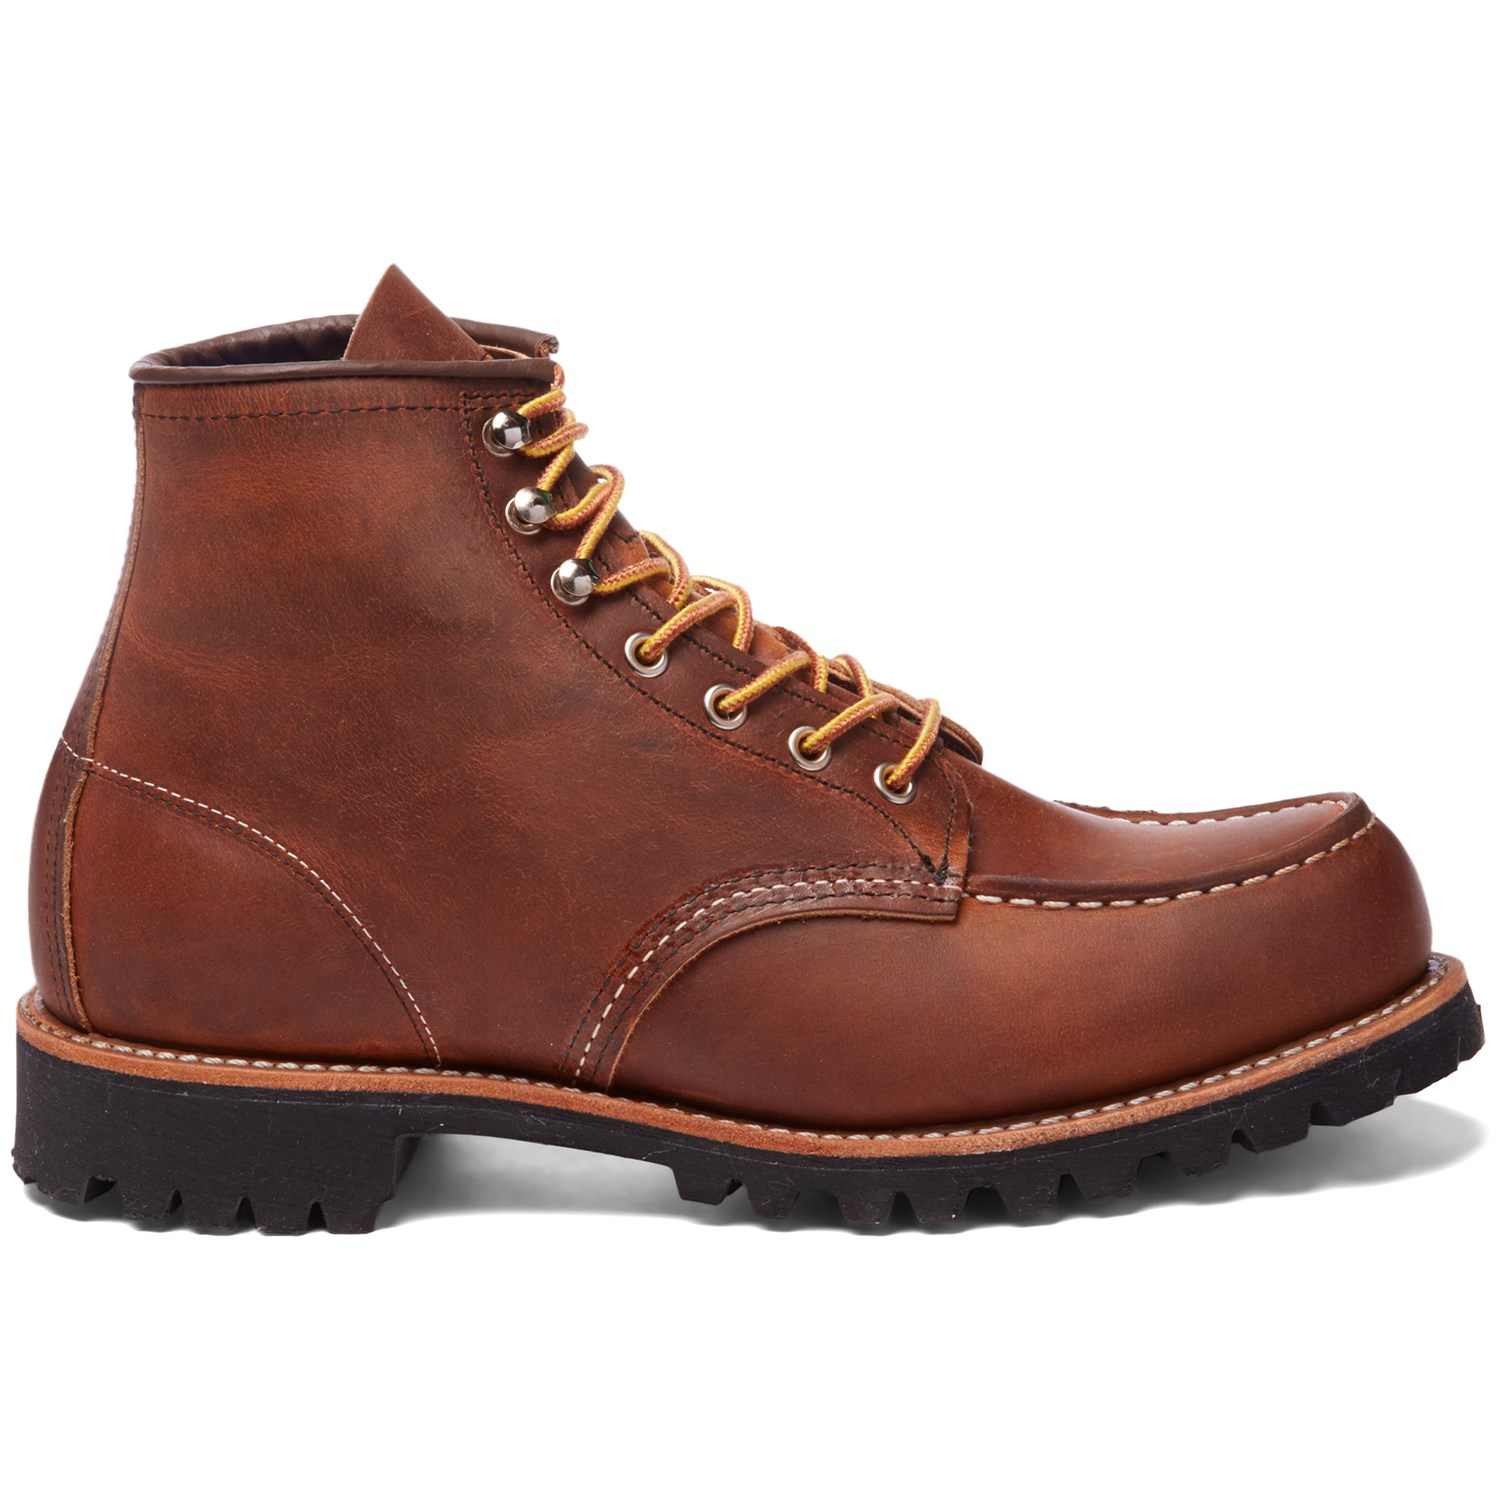 Red Wing Work Boots Store Locations - Cr Boot